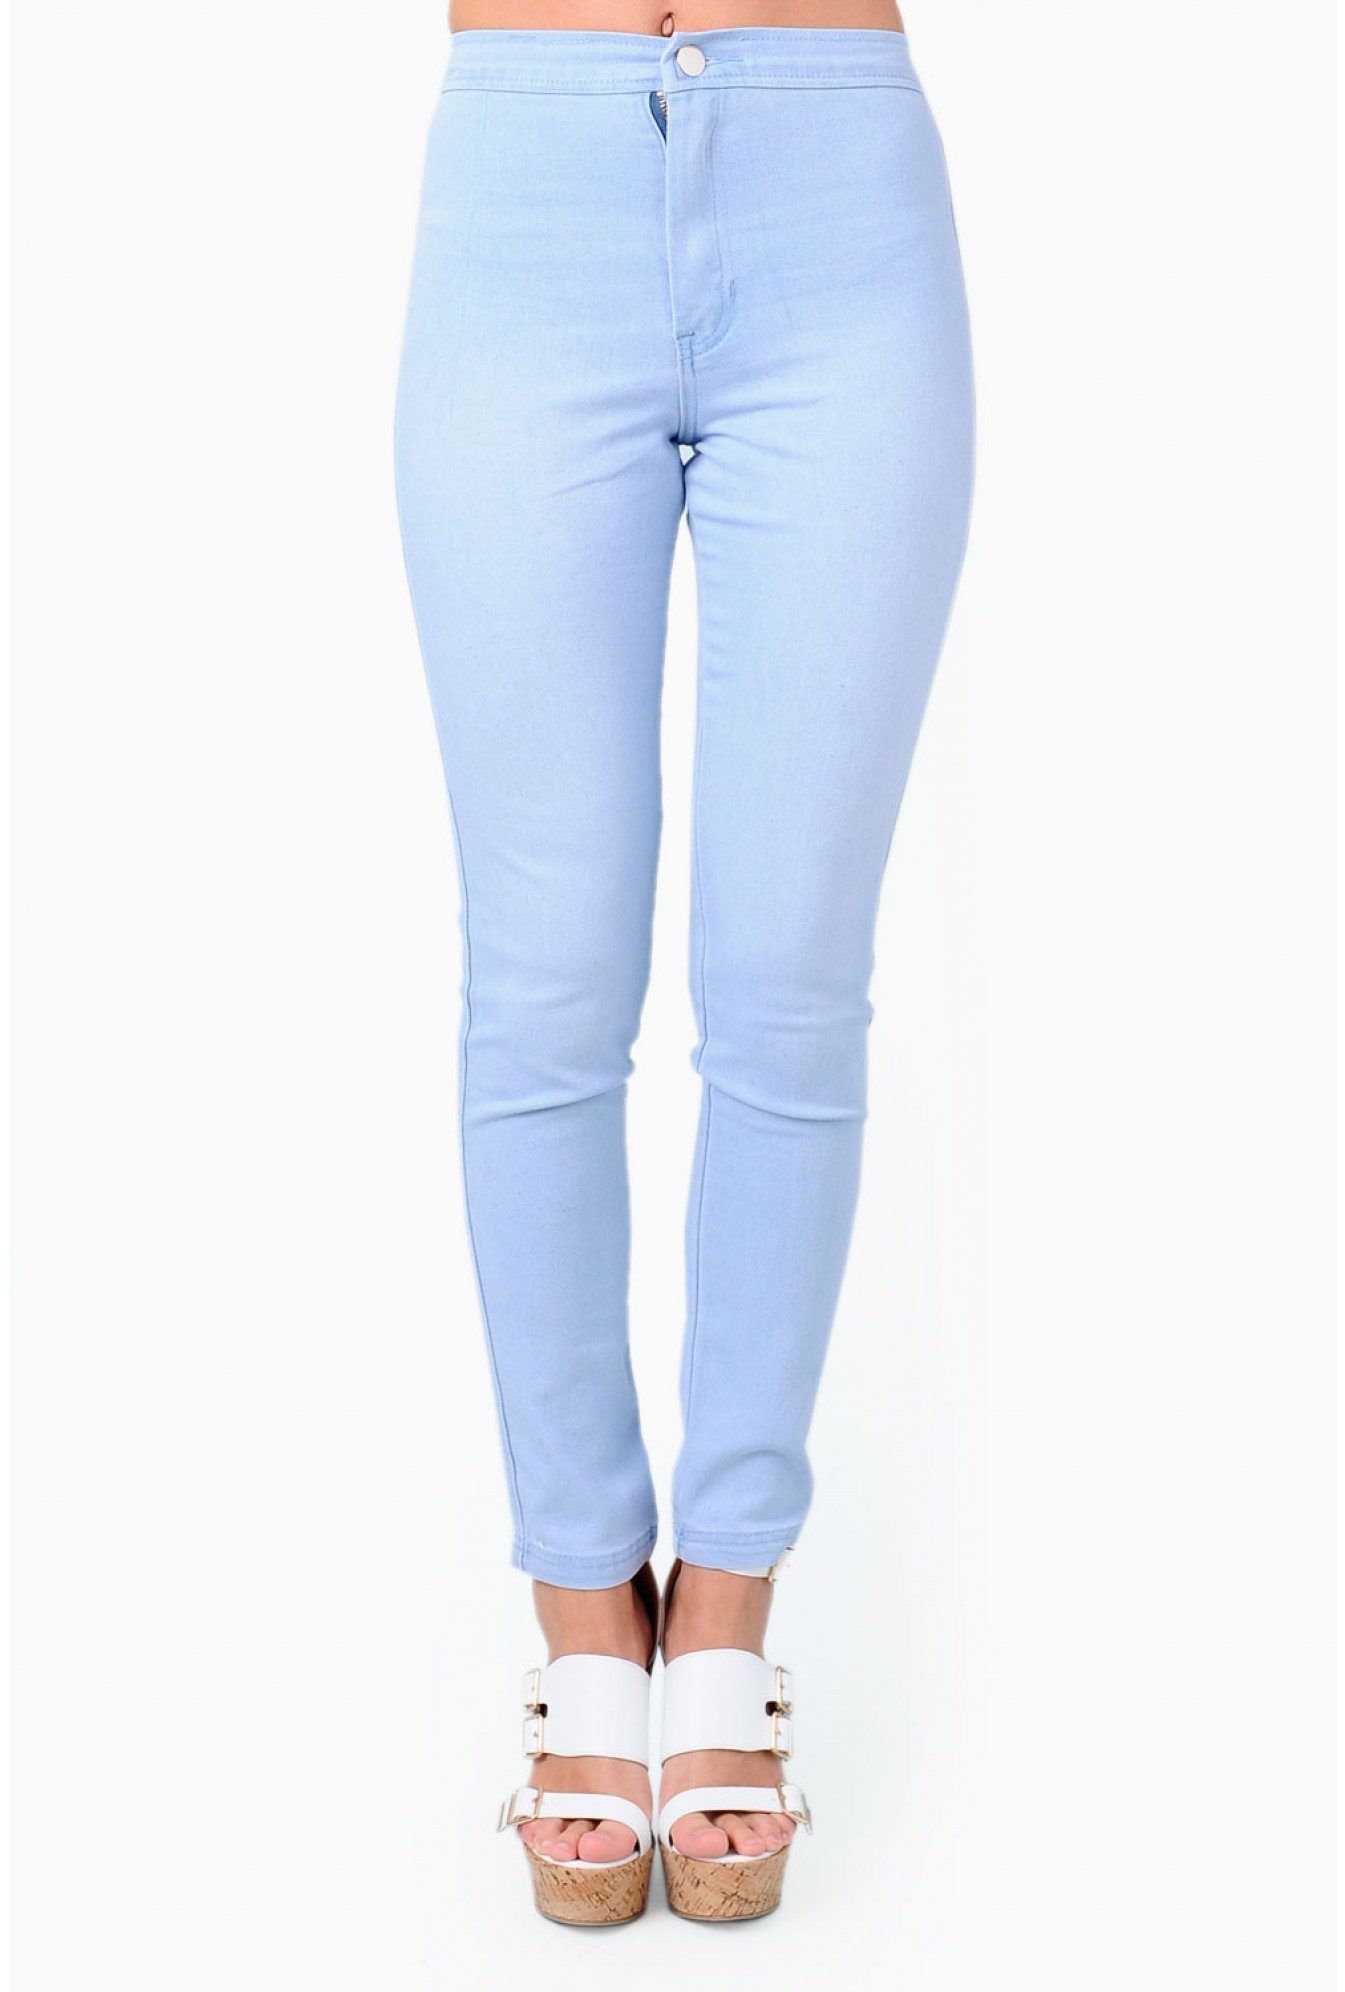 e7baaabf440bf9 More Views. Erika High Waisted Denim Jeggings in Light Blue